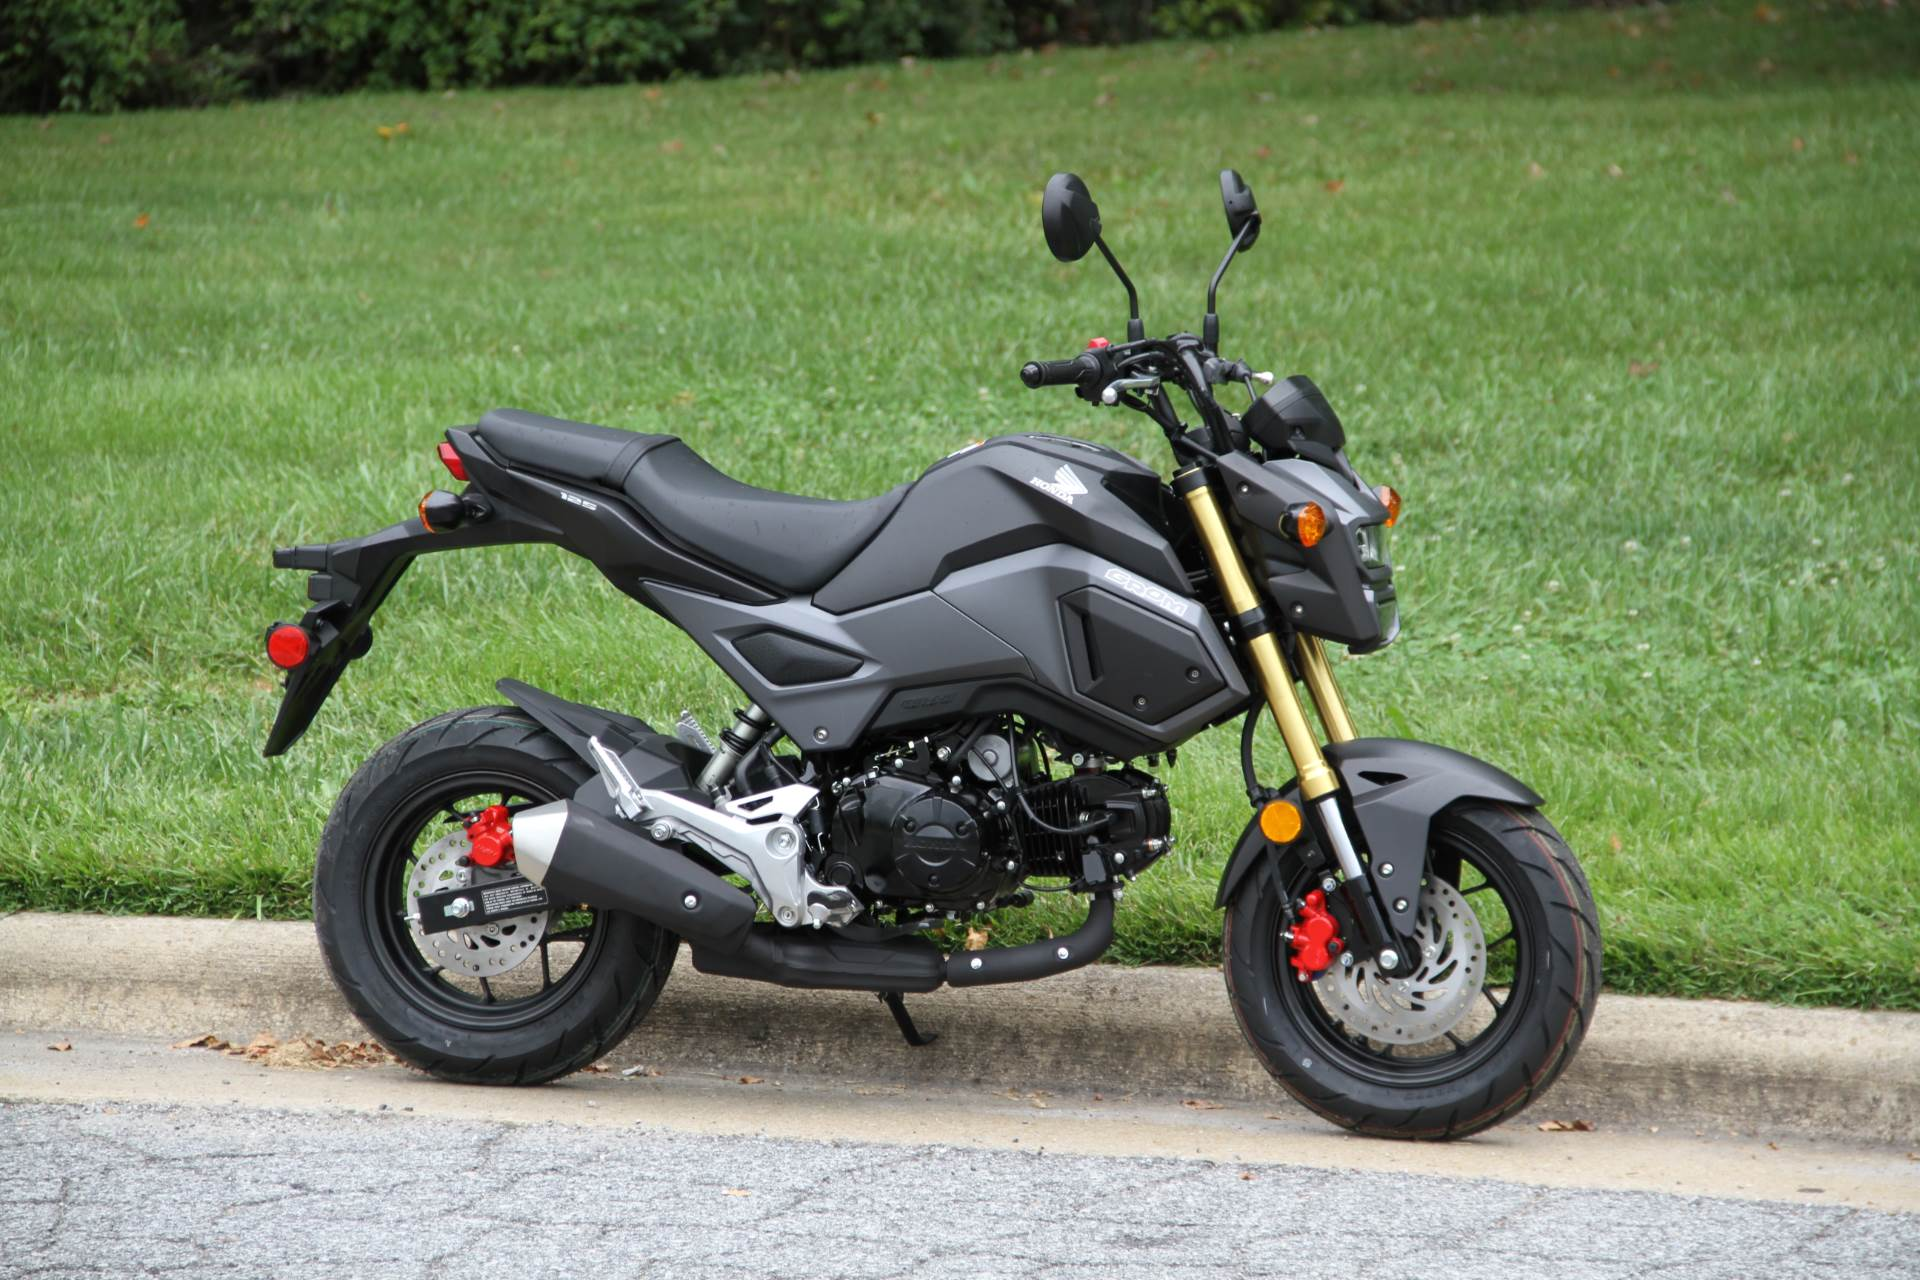 2017 Honda Grom Colors 2017 Cars Review | 2017 - 2018 Cars Reviews